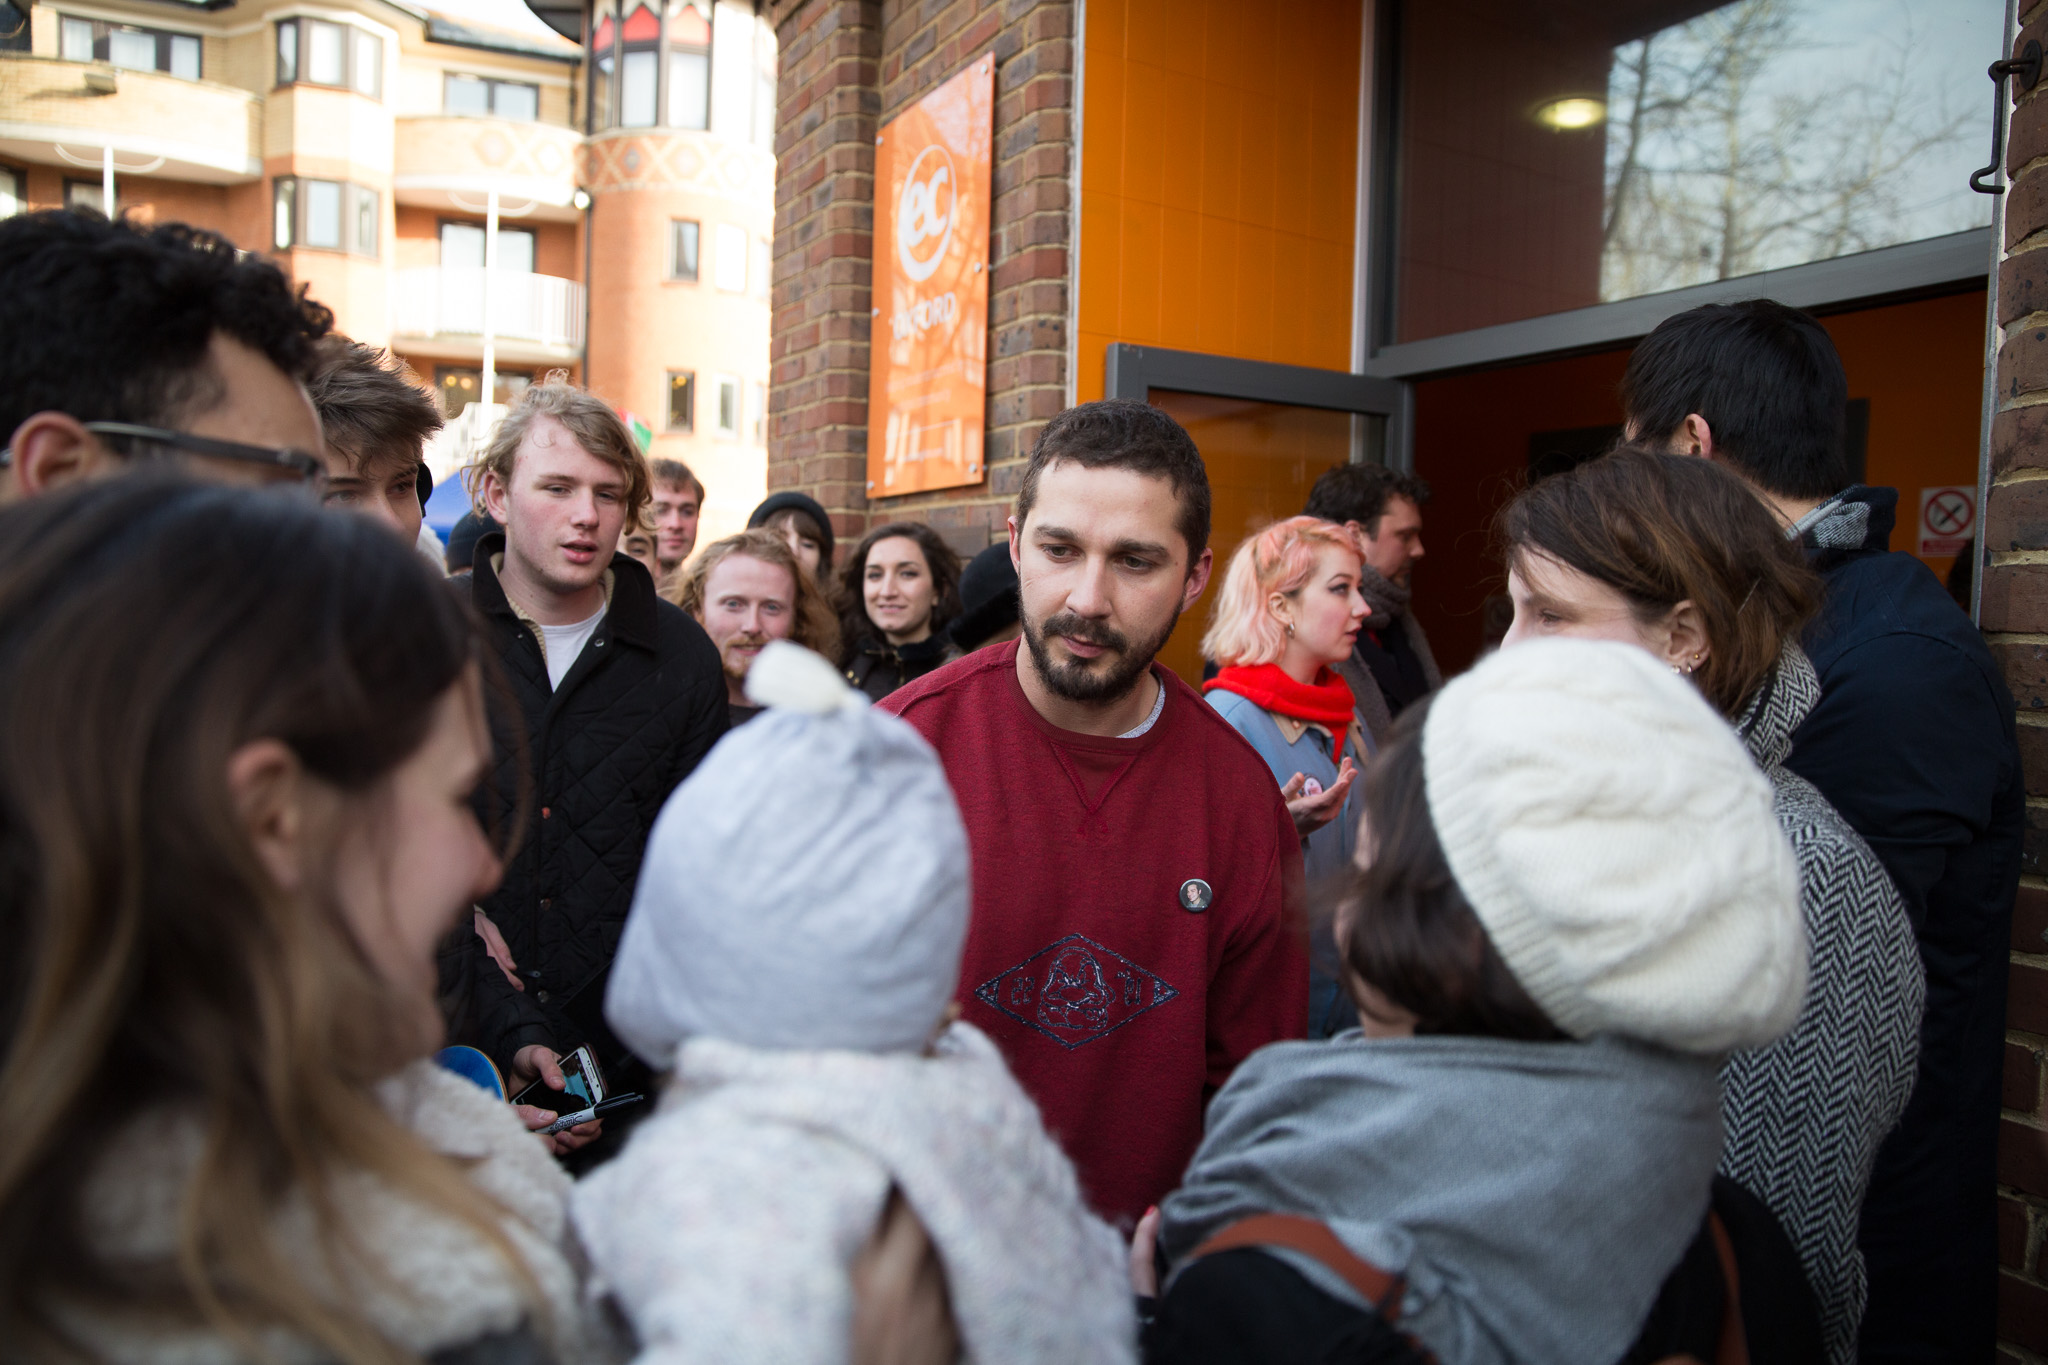 Transformers actor Shia LaBeouf greets fans as he finishes 24hr lift stunt